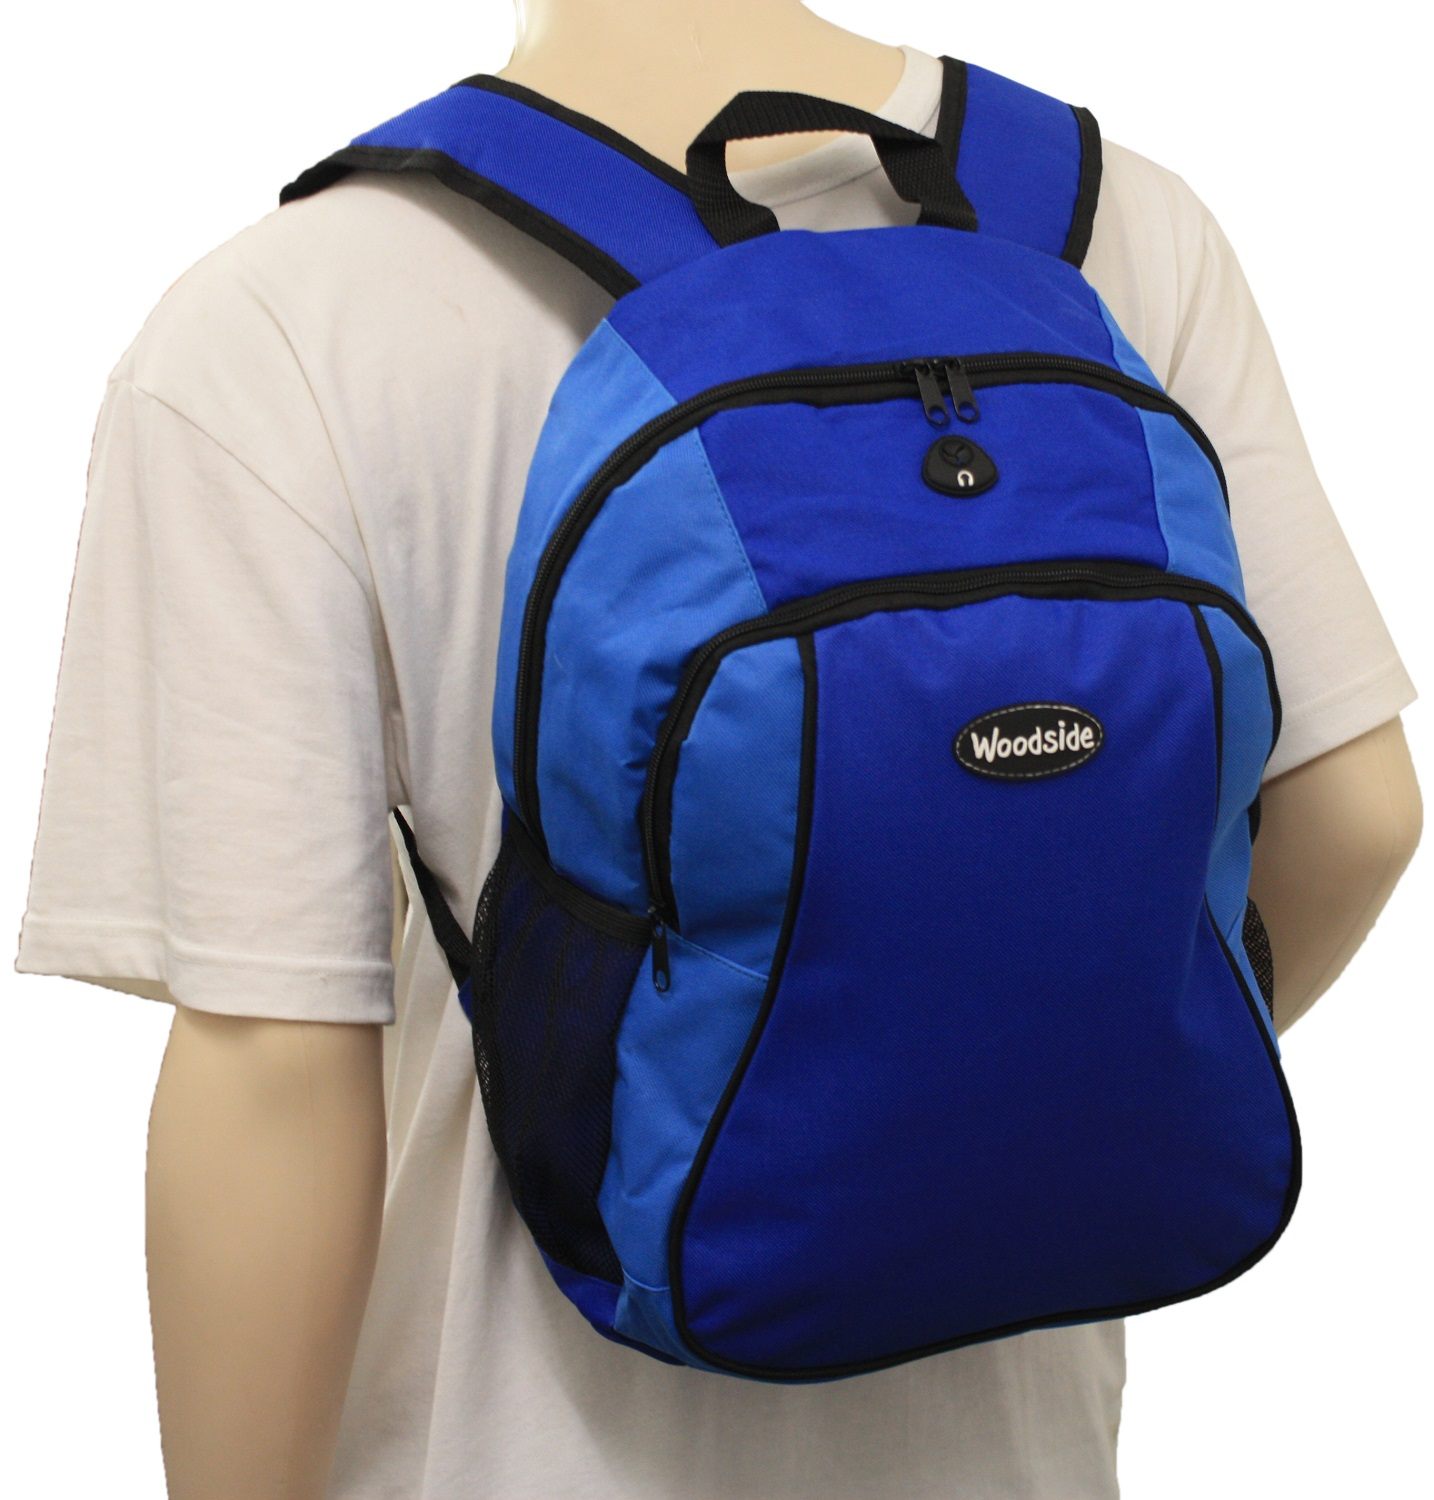 ... WOODSIDE 25 LITRE RUCKSACK/BACKPACK ADULTS/CHILDS SCHOOL COLLEGE BAG